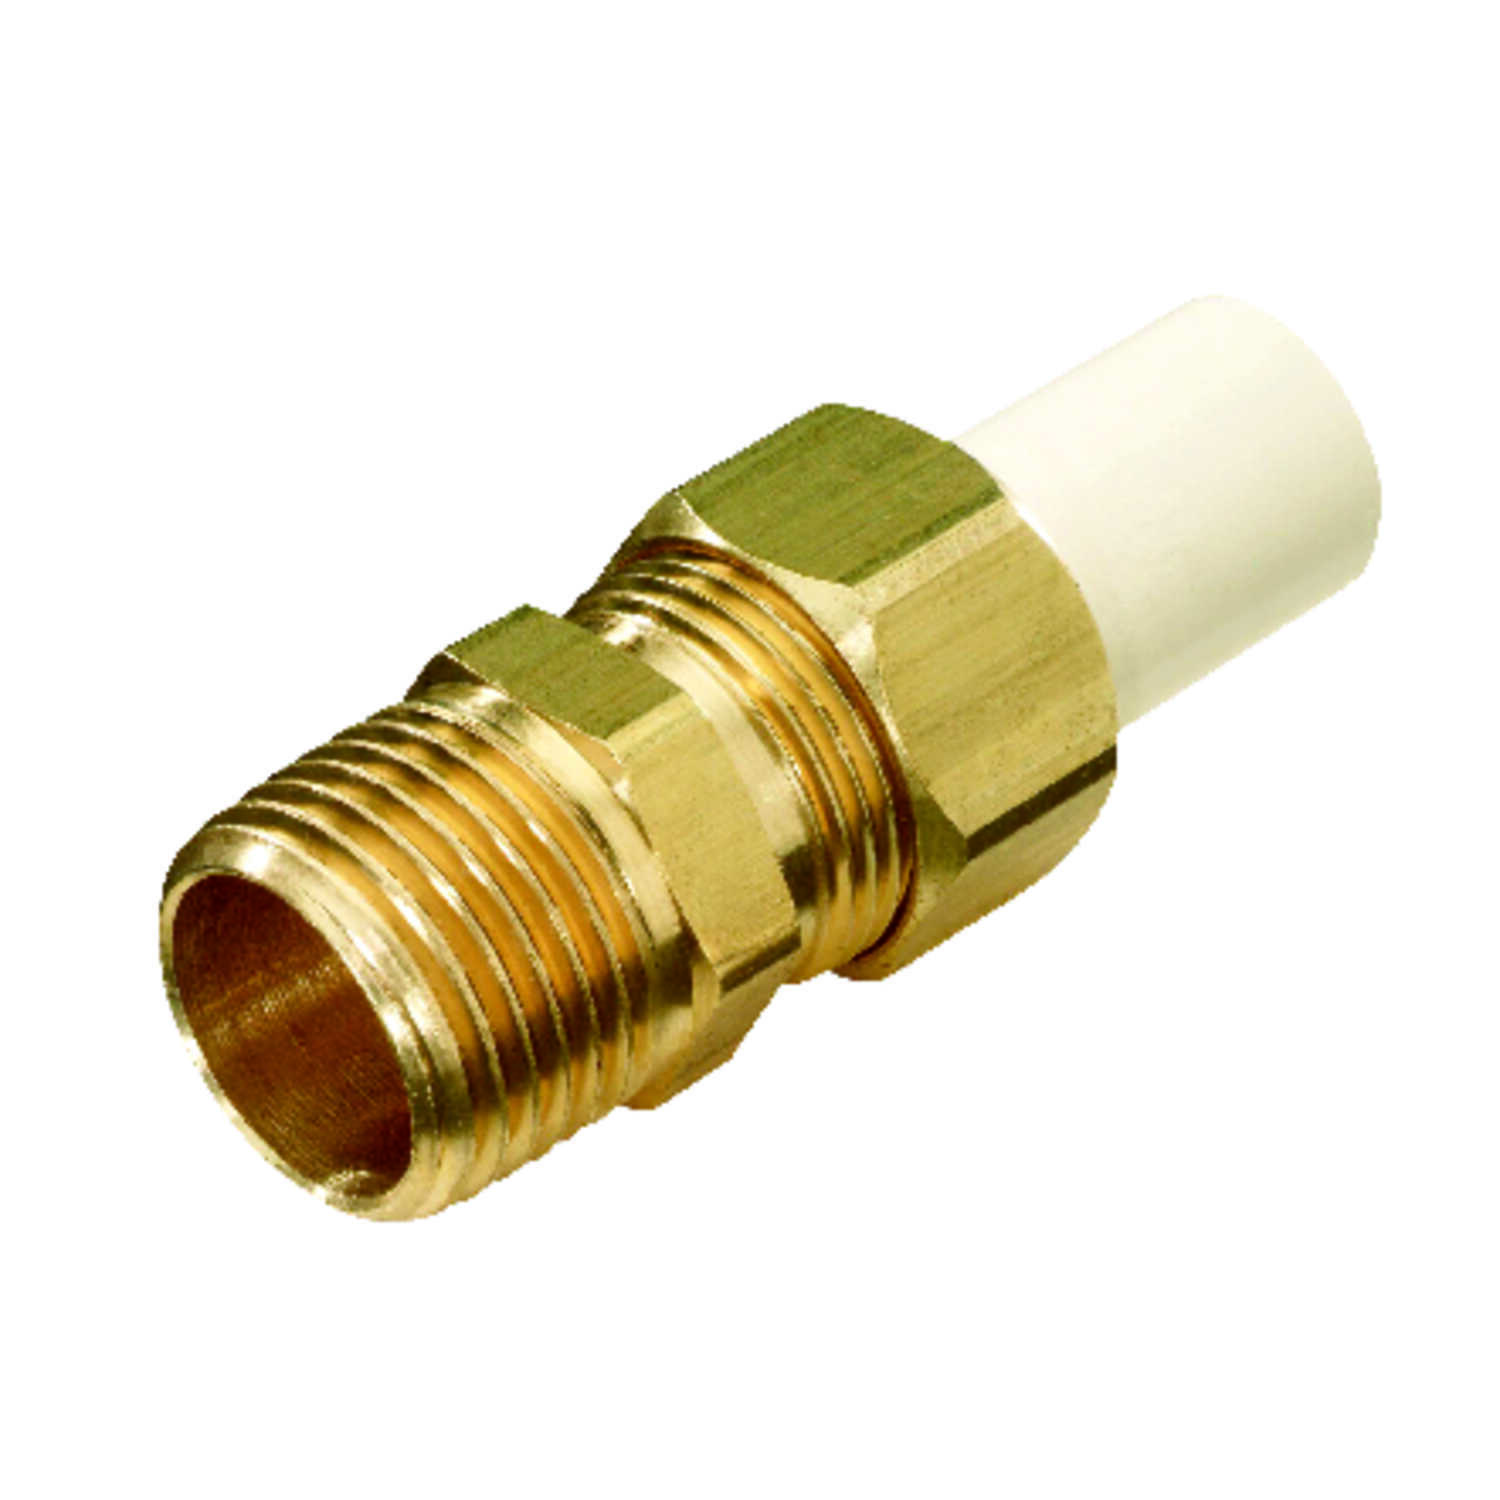 KBI  Schedule 40  1/2 in. MIPT   x 1/2 in. Dia. Spigot  CPVC  Transition Adapter